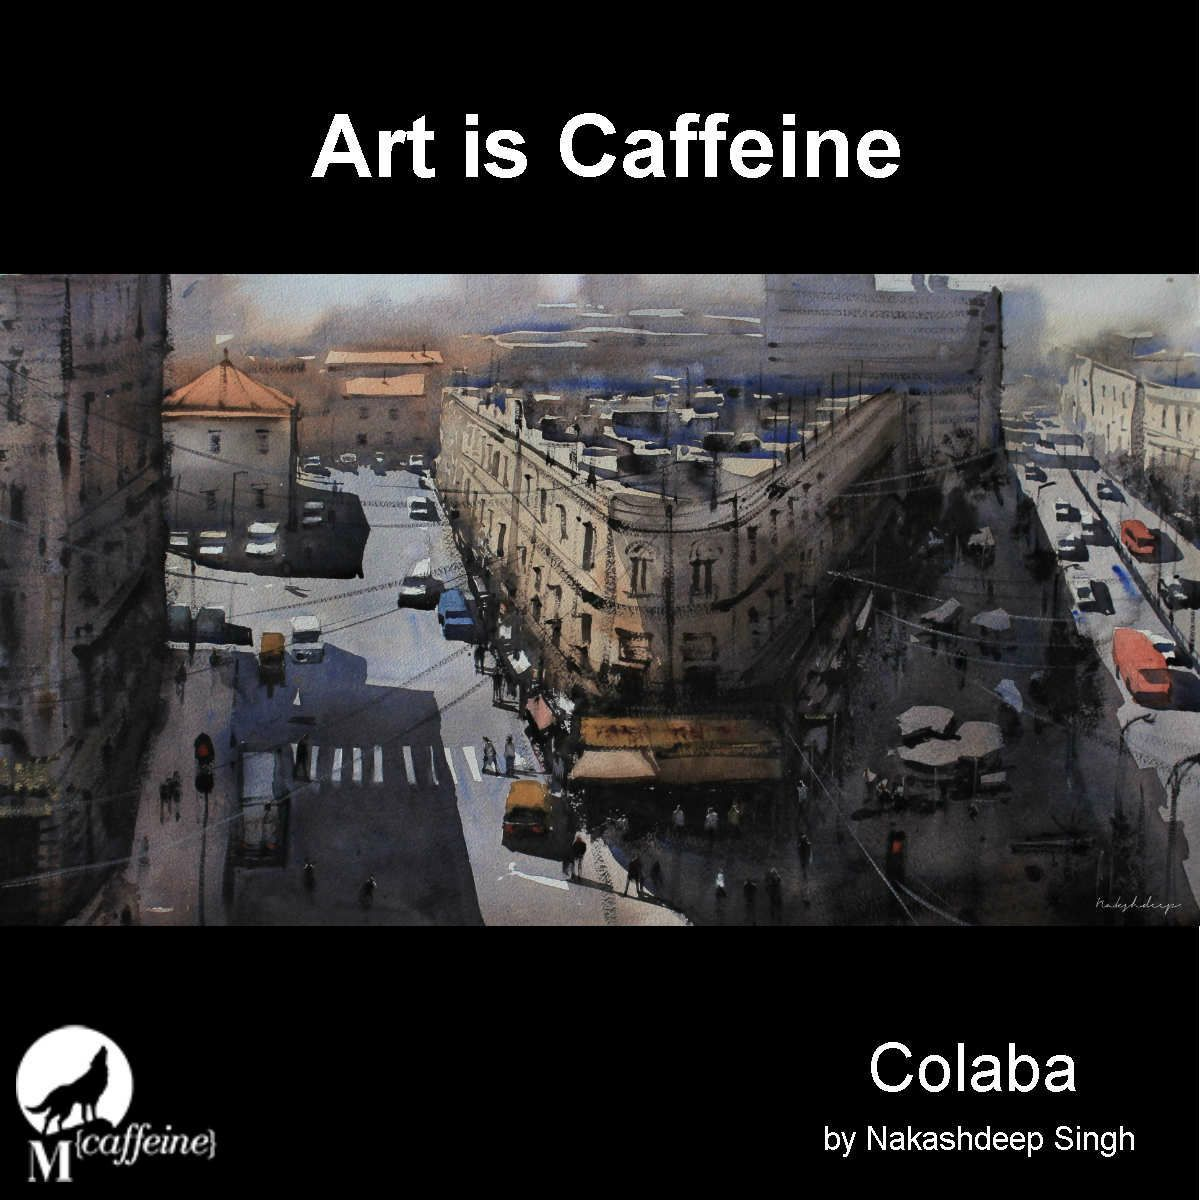 Art is Caffeine - Colaba, Mumbai